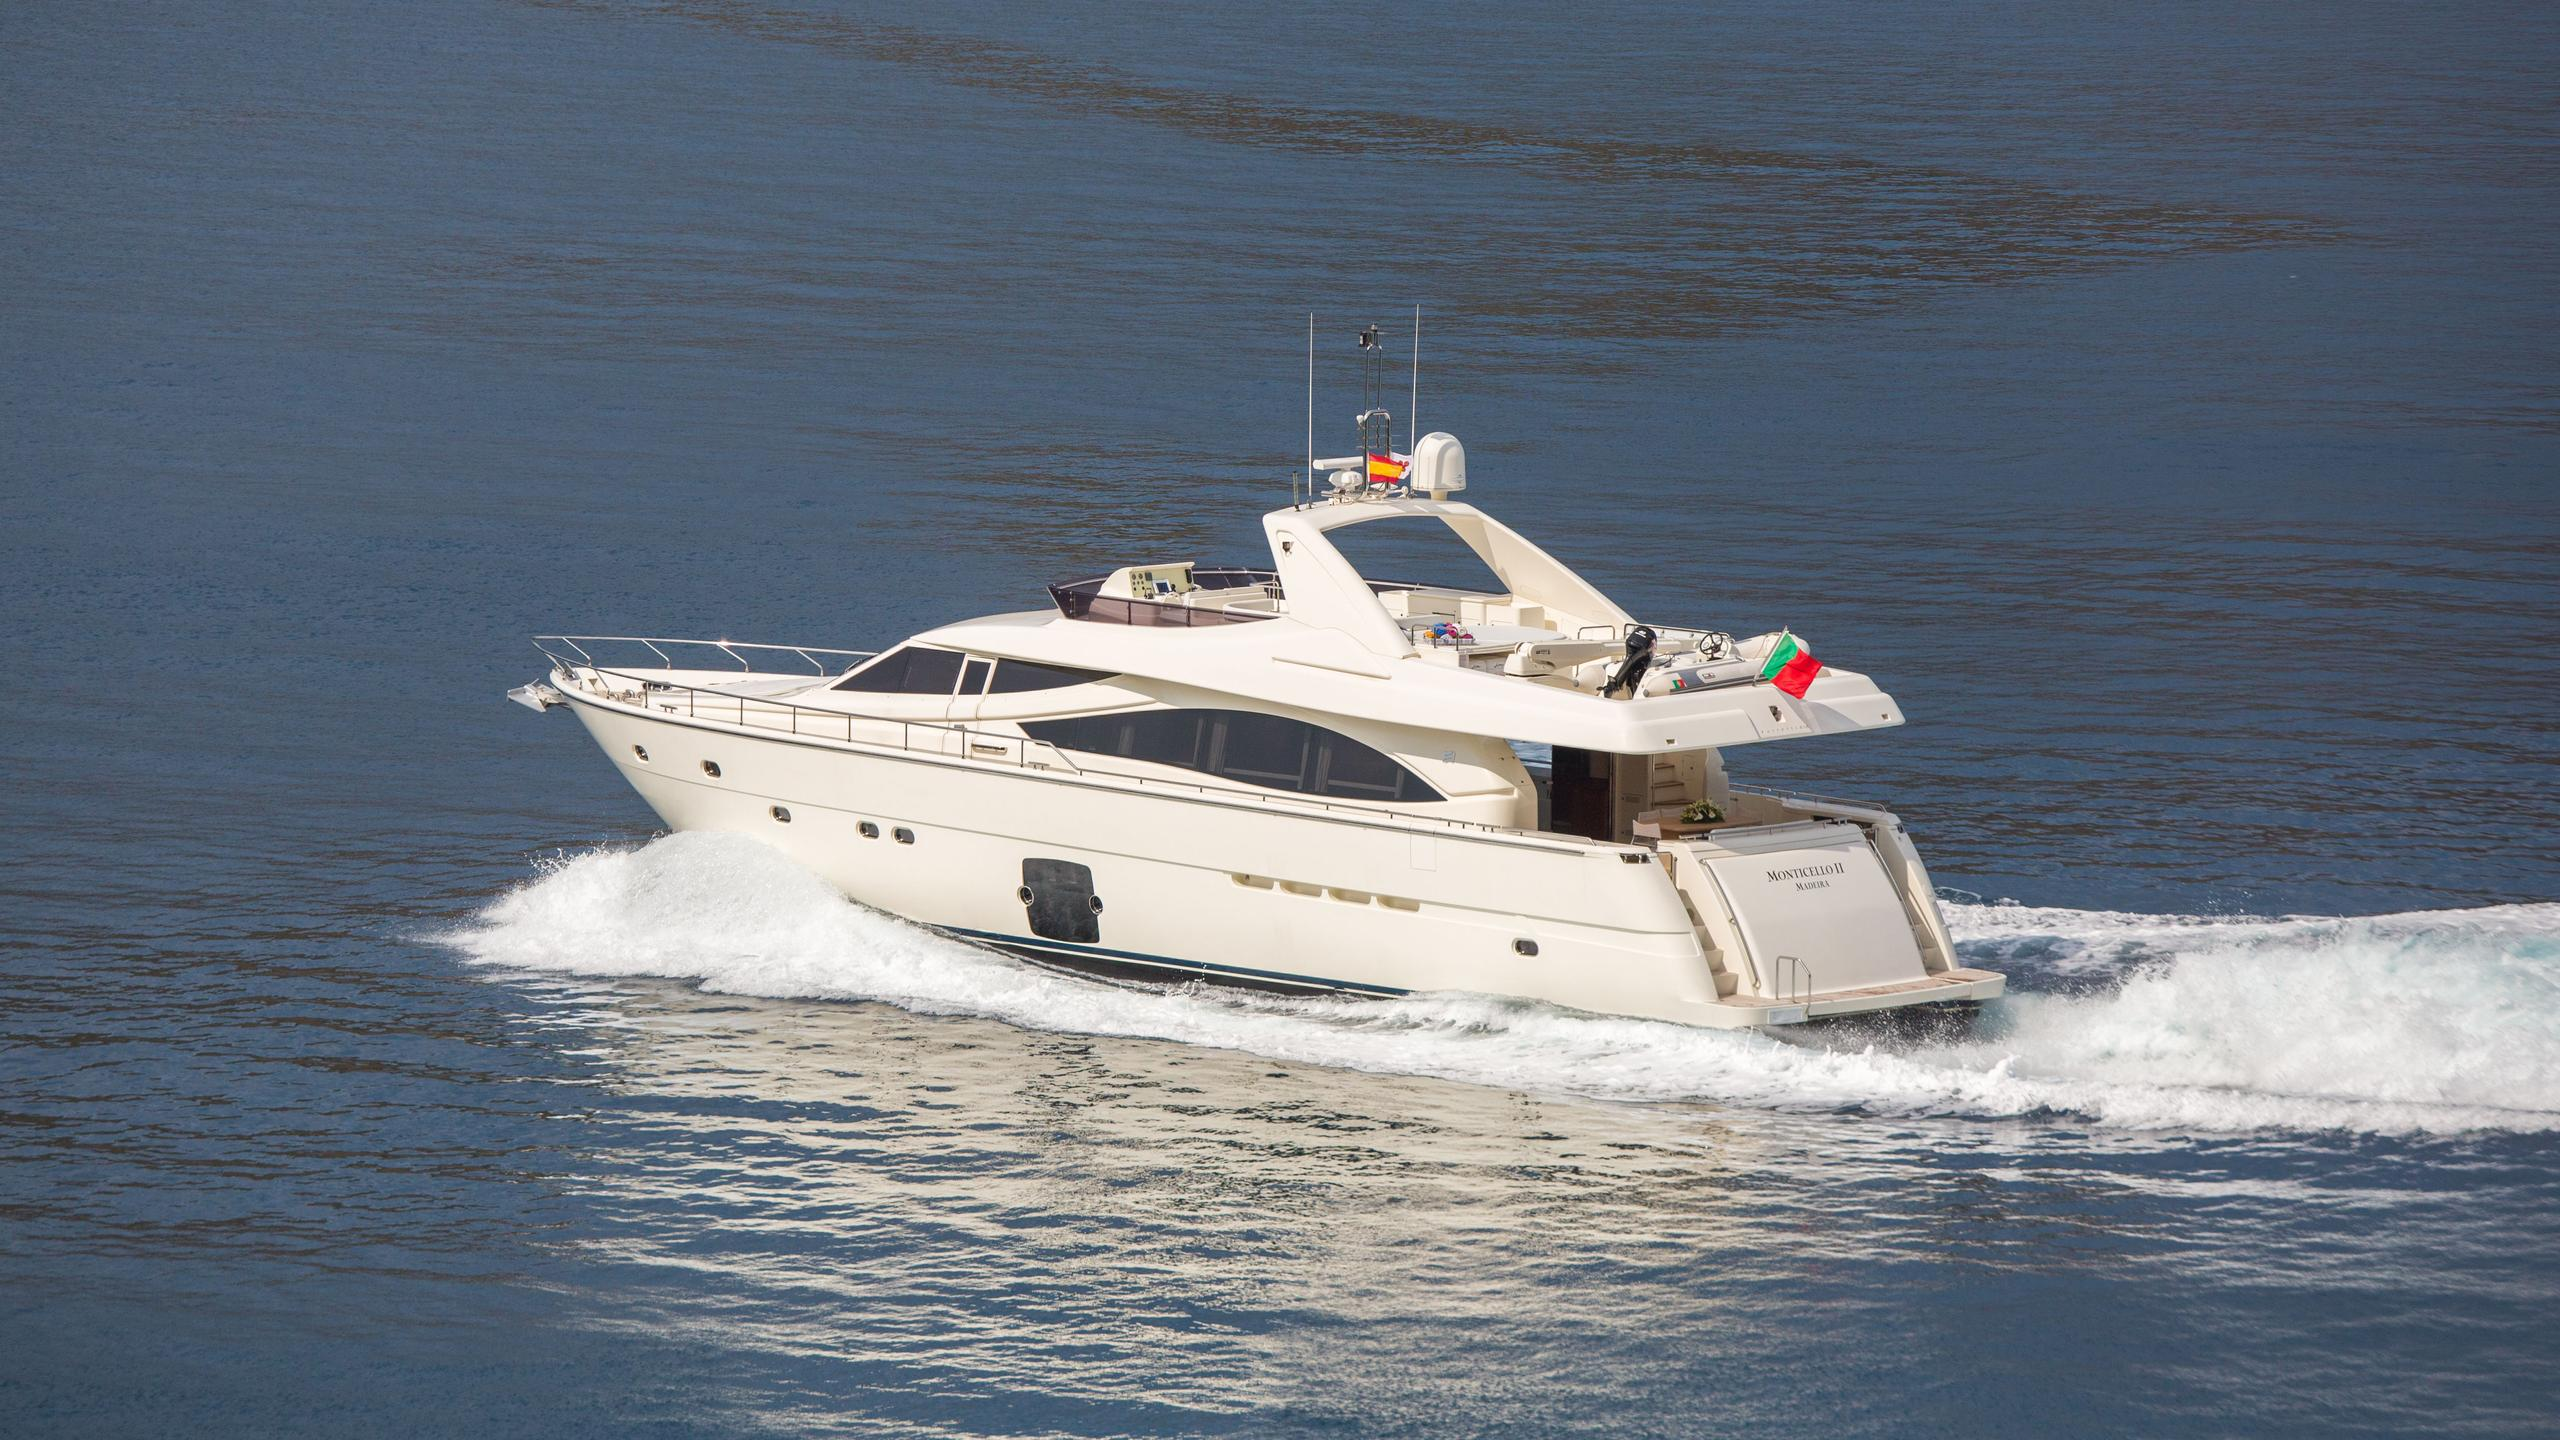 monticello-ii-yacht-sale-aerial